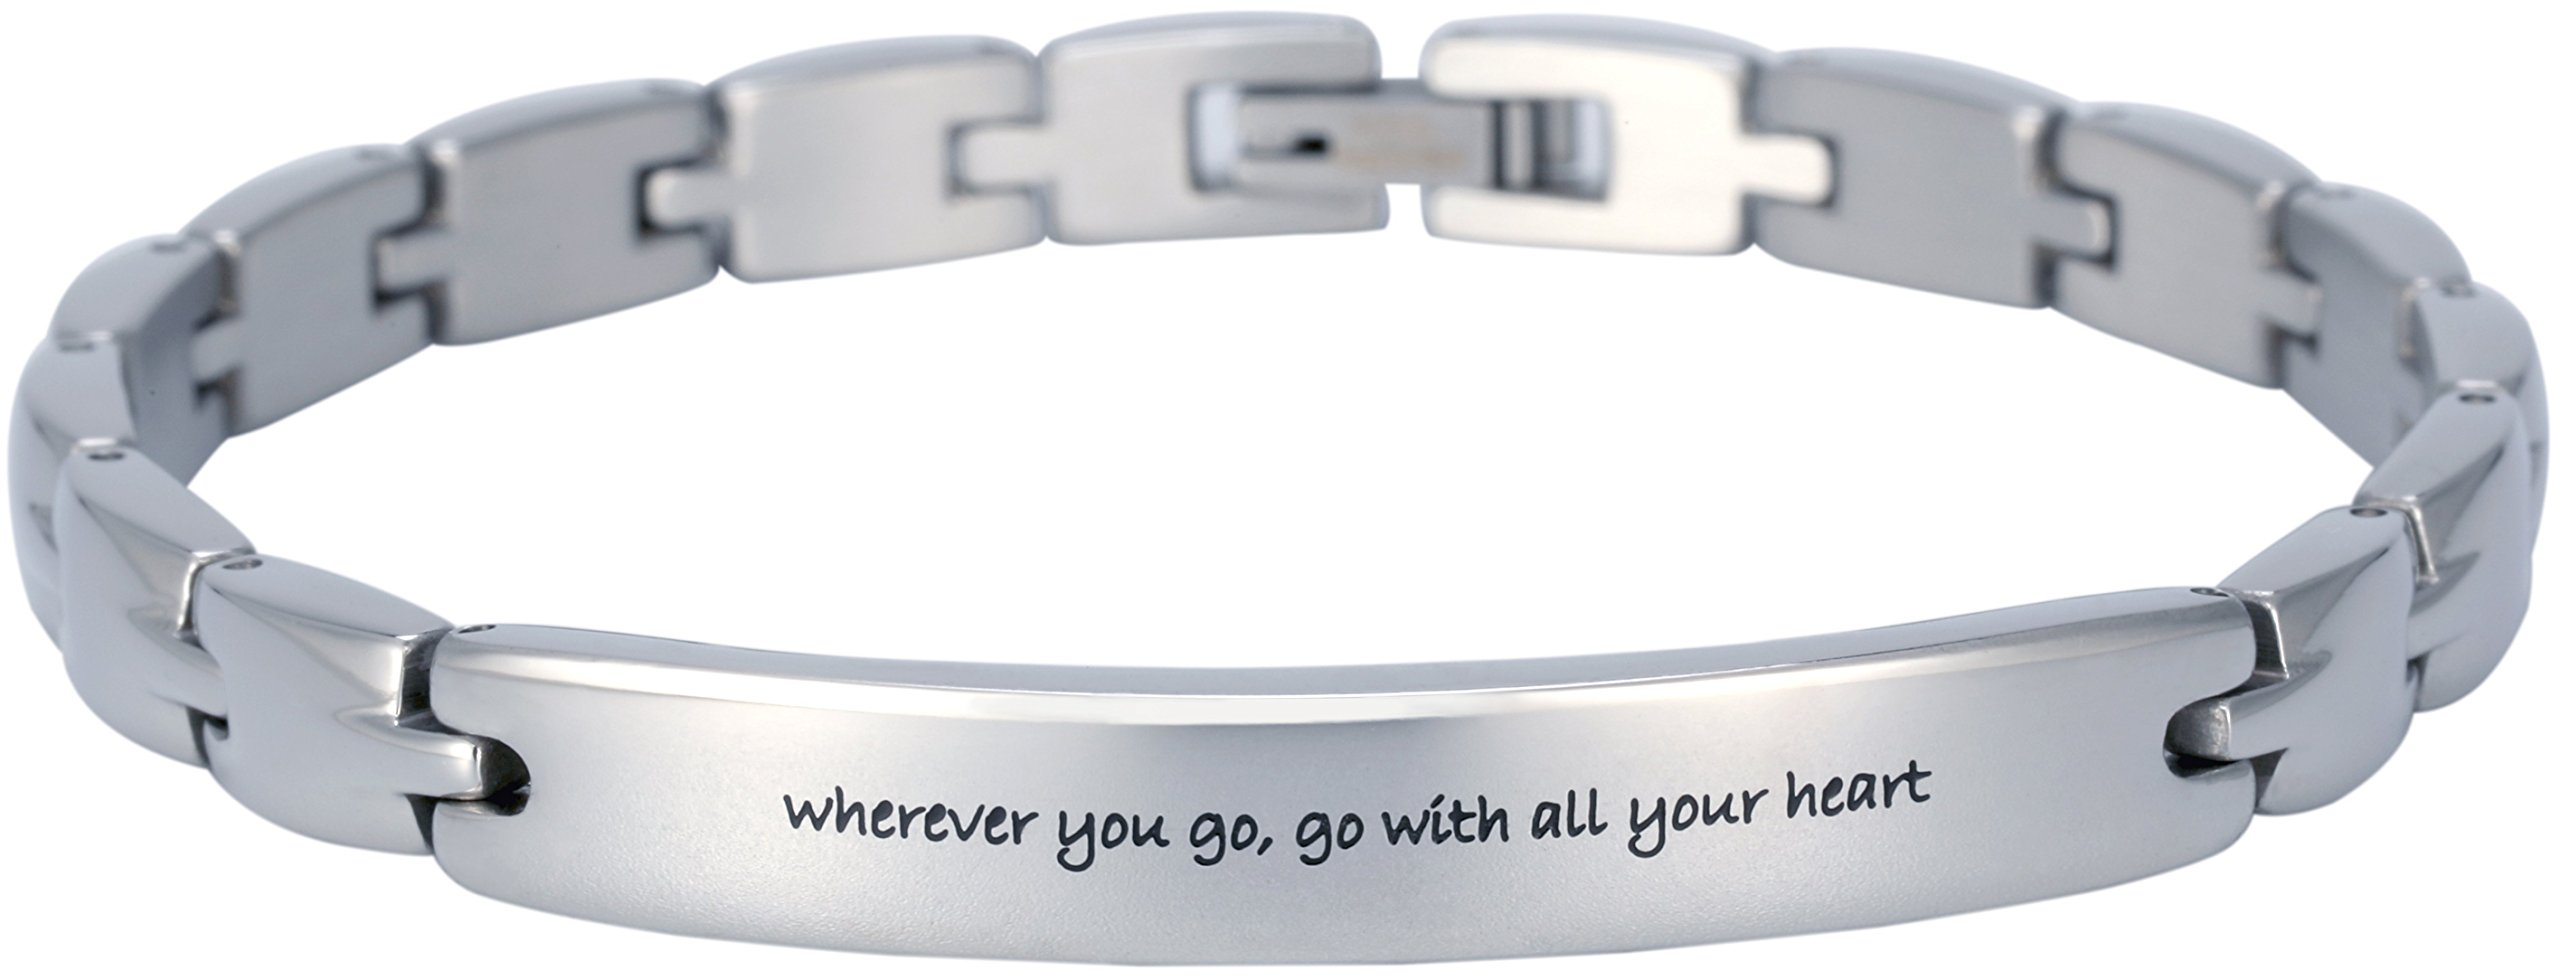 Elegant Surgical Grade Steel Womens Inspirational Quote Mantra Bracelet, Many Styles (Wherever You go, go with All Your Heart)